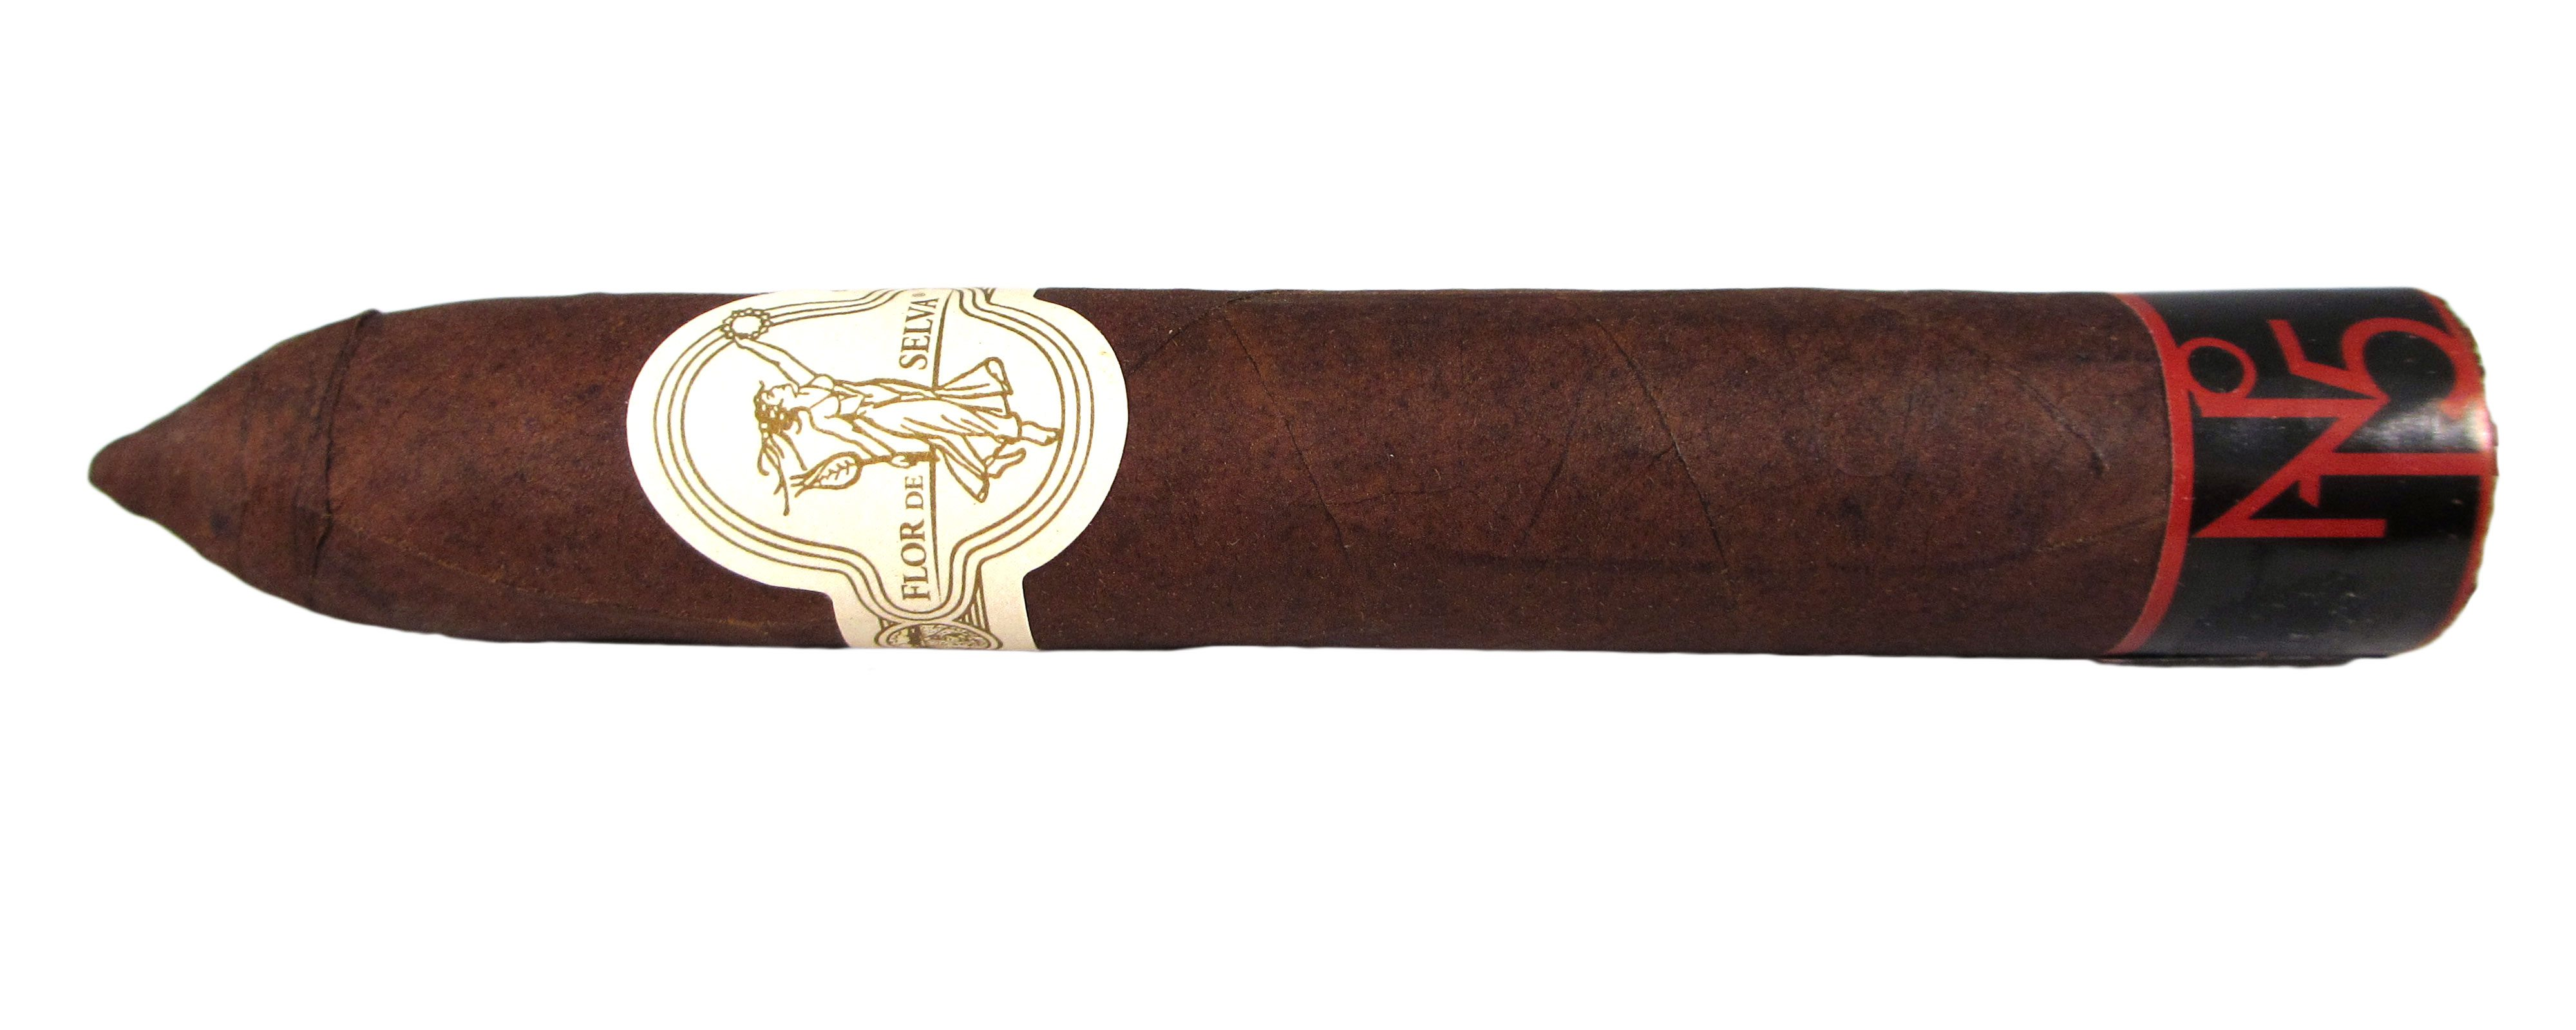 Blind Cigar Review: Maya Selva | Flor de Selva Maduro No. 15